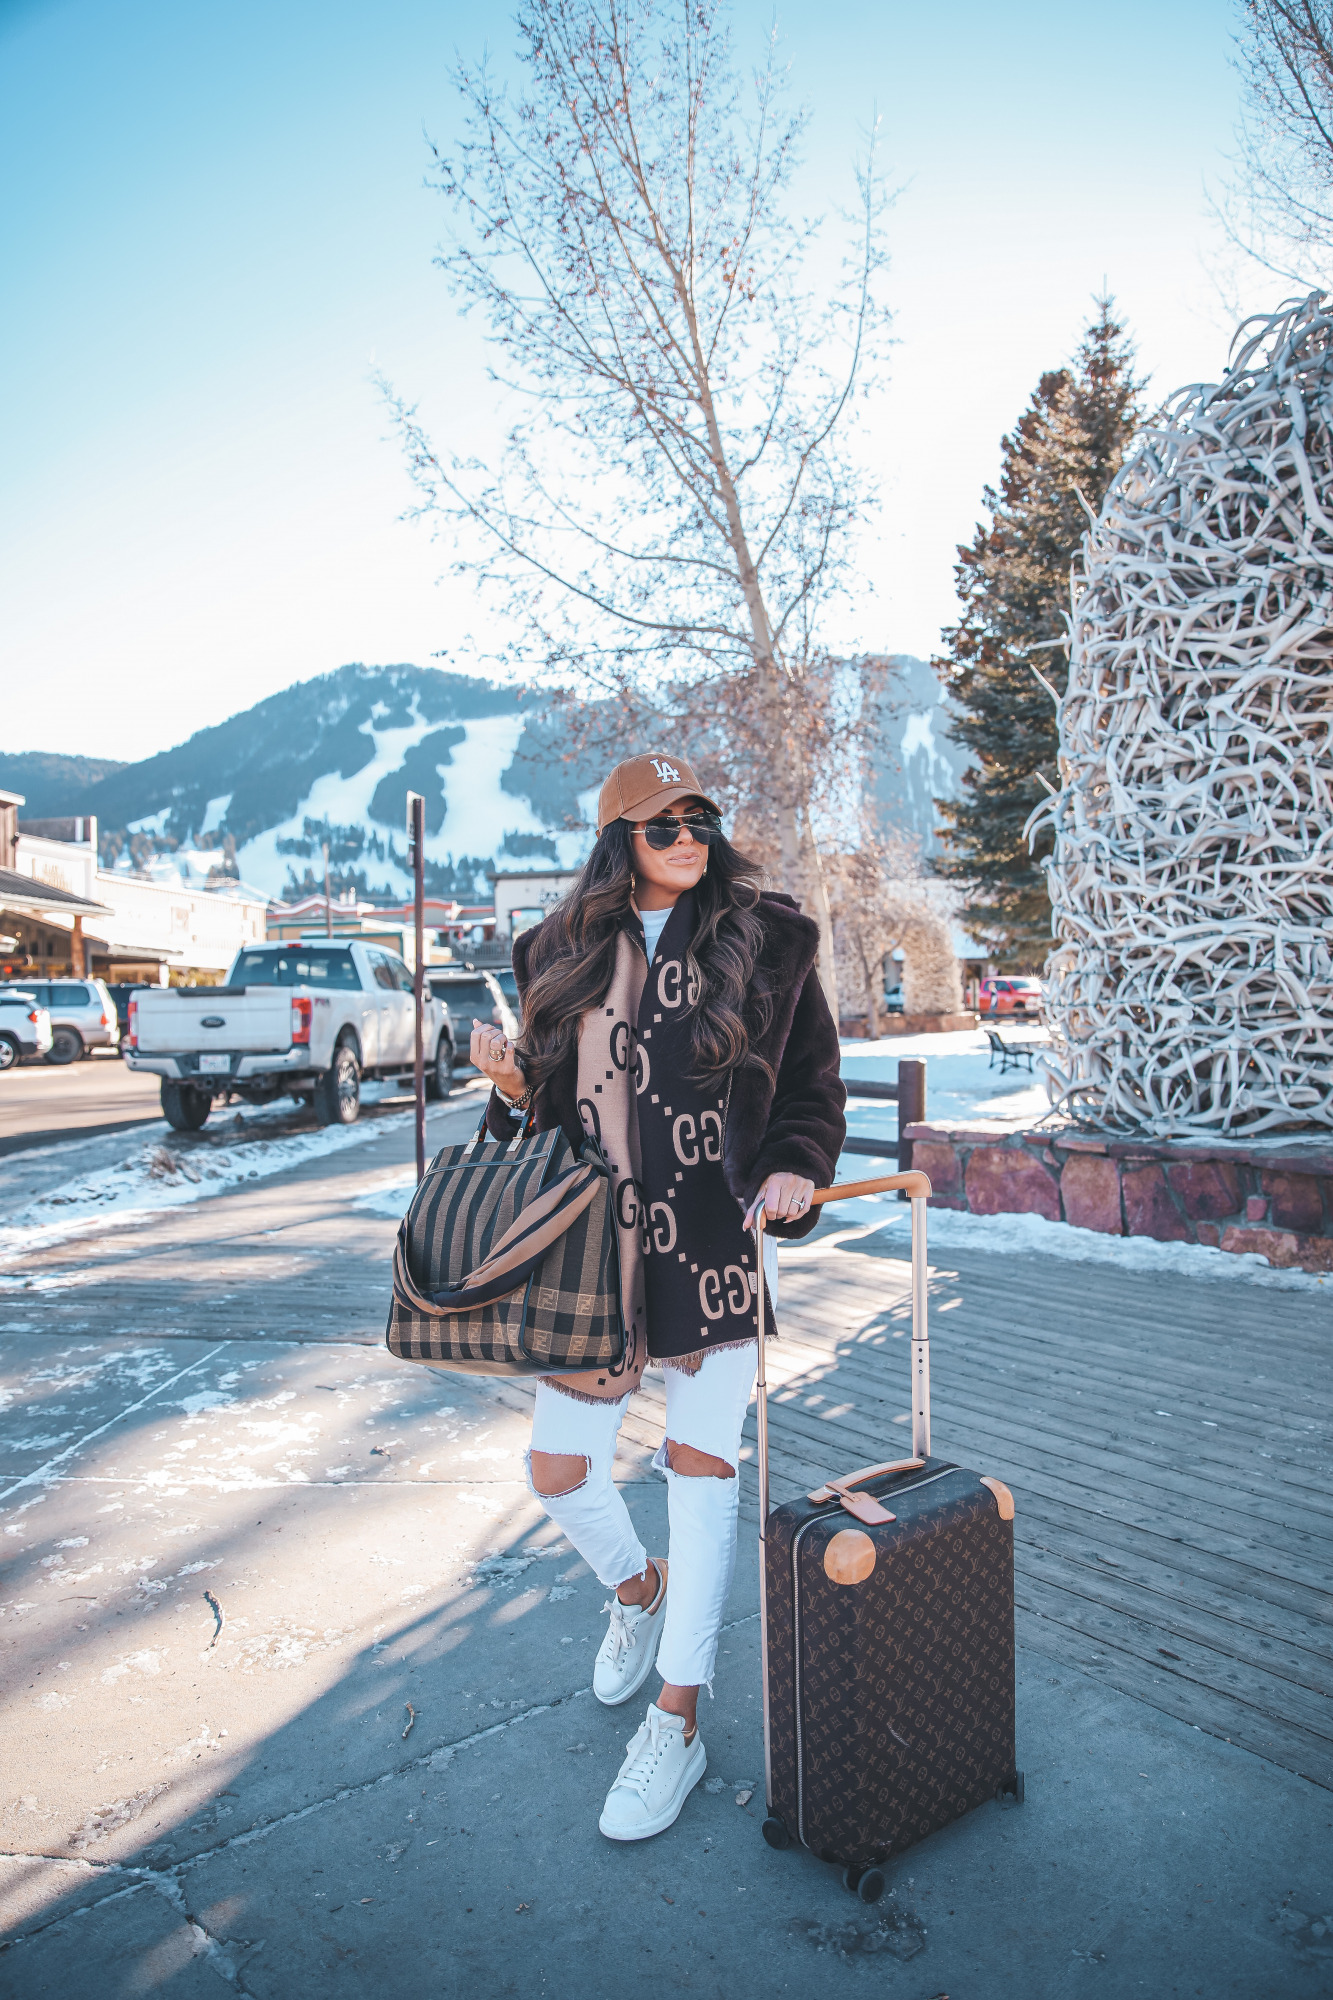 casual travel outfit idea winter 2021, airport fashion outfit idea, cute airport outfit idea winter, fendi tote |Winter Fashion by popular US fashion blog, The Sweetest Thing: image of Emily Gemma standing outside in downtown Jackson Hole, WY and wearing a Free People top, BB Dakota faux fur jacket, distressed white denim jeans, Gucci scarf, '47 brand cap, Le Specs sunglasses, and standing next to a Louis Vuitton rolling suitcase and holding a Fendi tote bag.